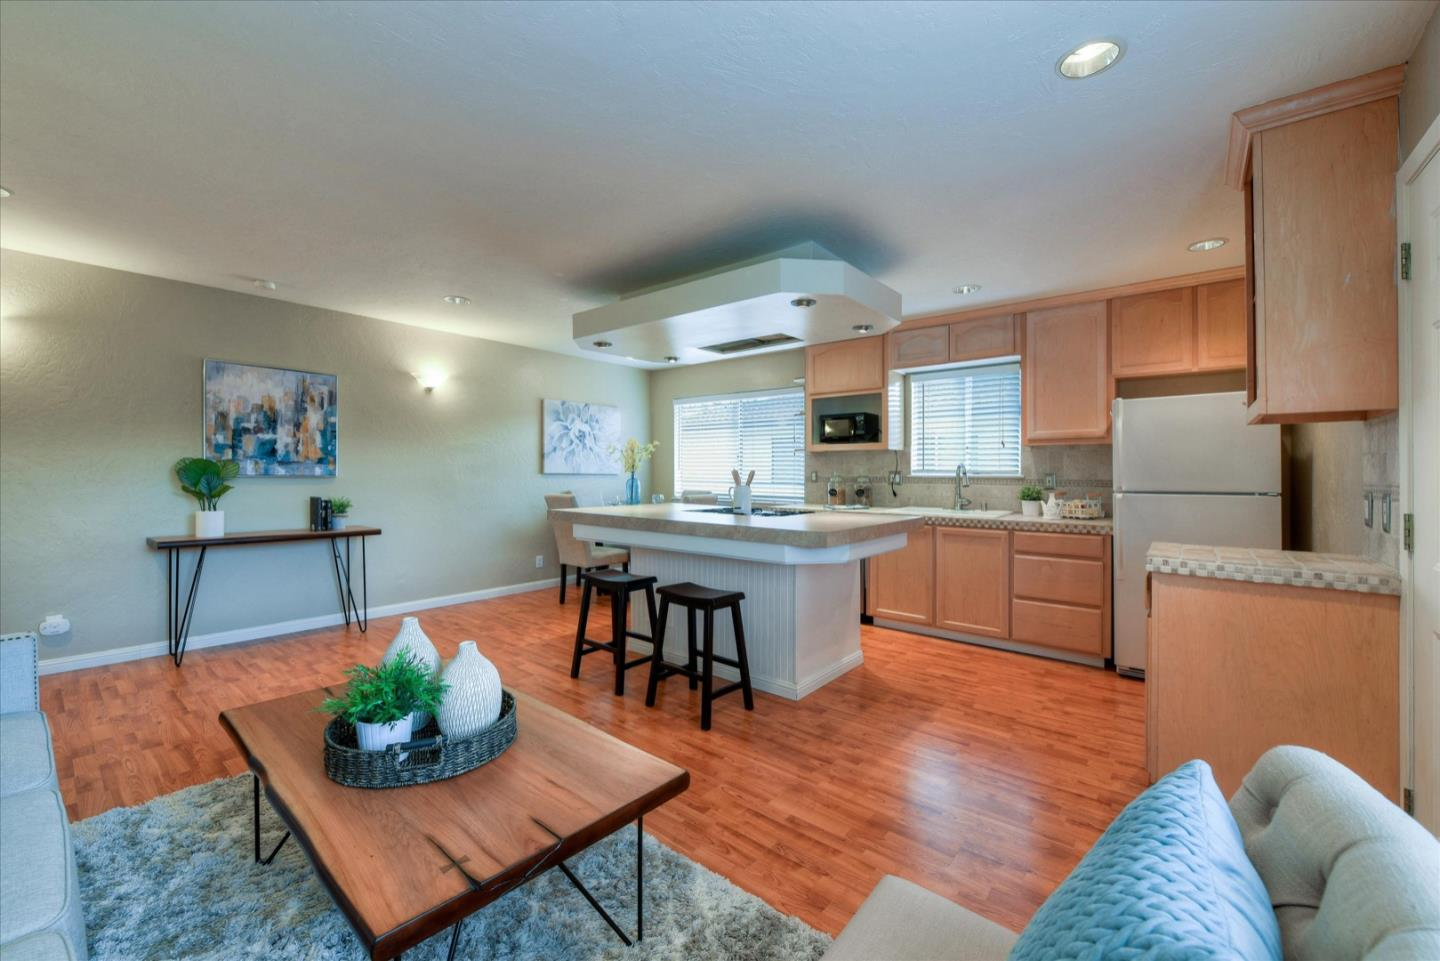 Just a few blocks from downtown Campbell. Upstairs unit w/lots of sunlight & private balcony. Laminate flooring; recessed lighting, kitchen w/island & breakfast bar; bath w/jetted tub & pedestal sink; A/C; shared carport w/storage; shared laundry; community pool/clubhouse. Proximity to 17/880 & 280, downtown Campbell, Pruneyard, ValleyFair/Santana & new Google Campus. Campbell Elementary School: Campbell School of Innovation (CSI) K-8 & Campbell Union High School: Del Mar High.  HOA Dues: $353/month